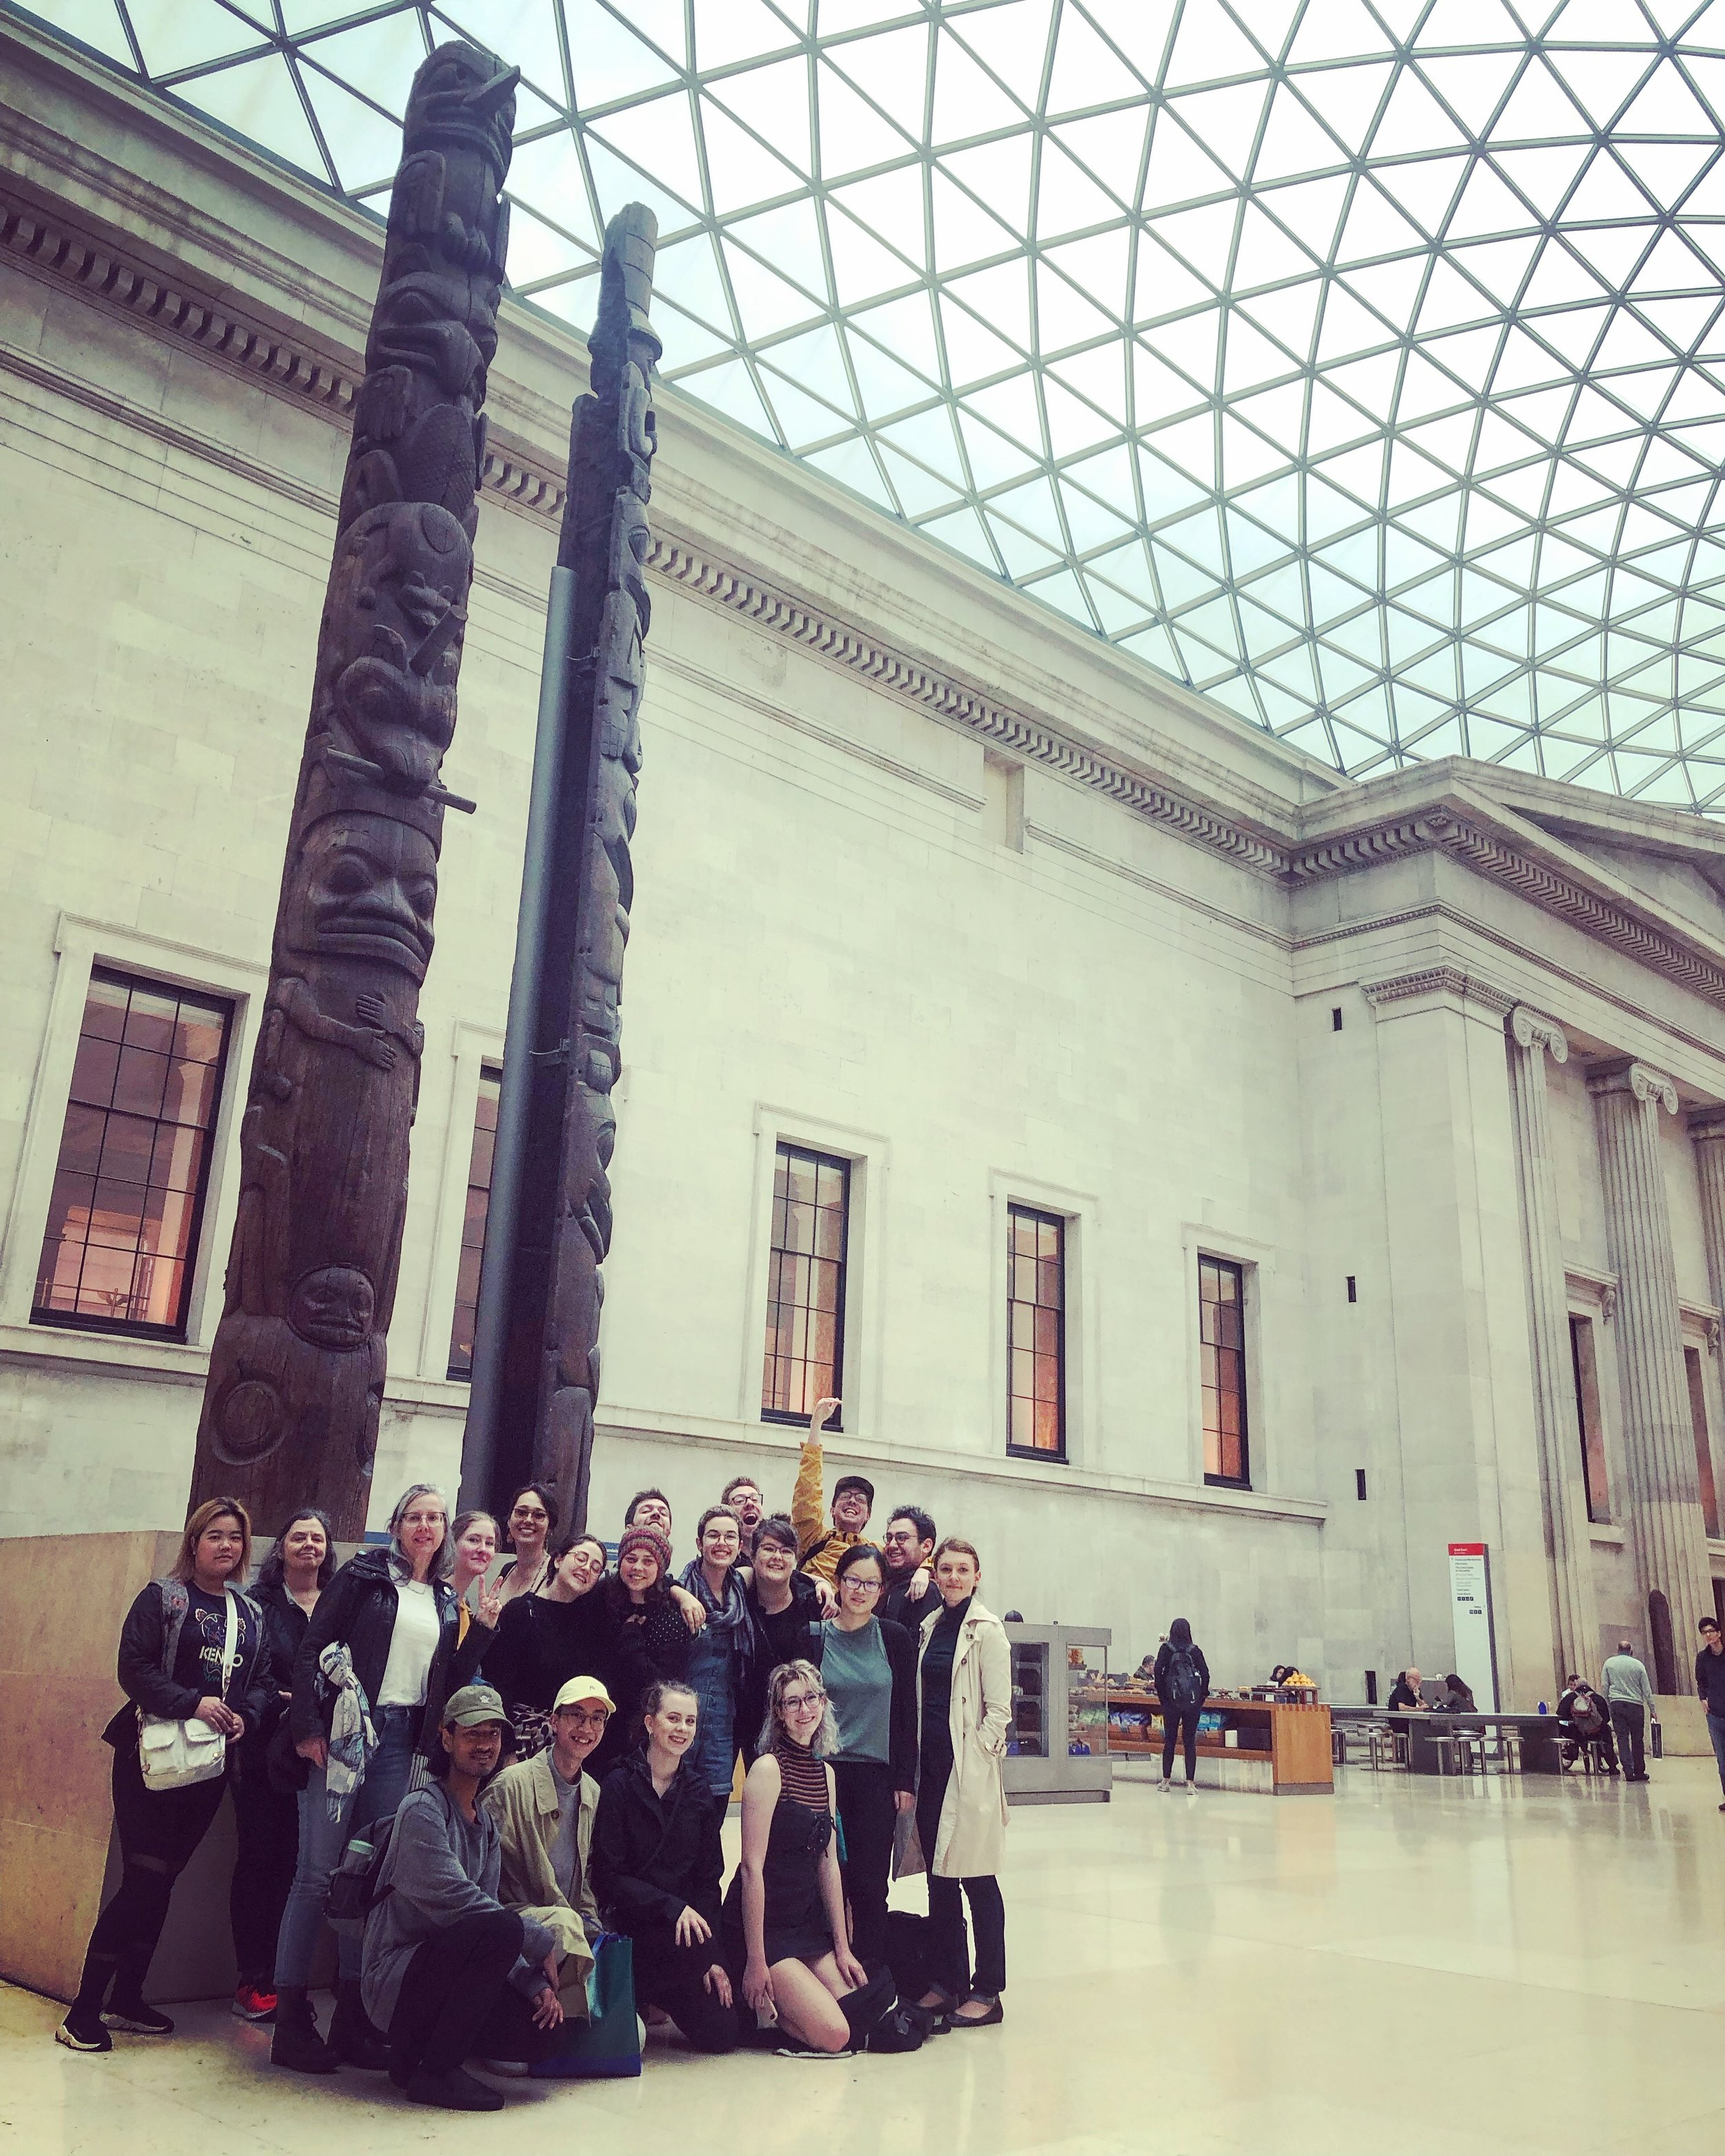 Our group visiting the British Museum— we were happy to pose with First Nations totem poles from British Columbia.